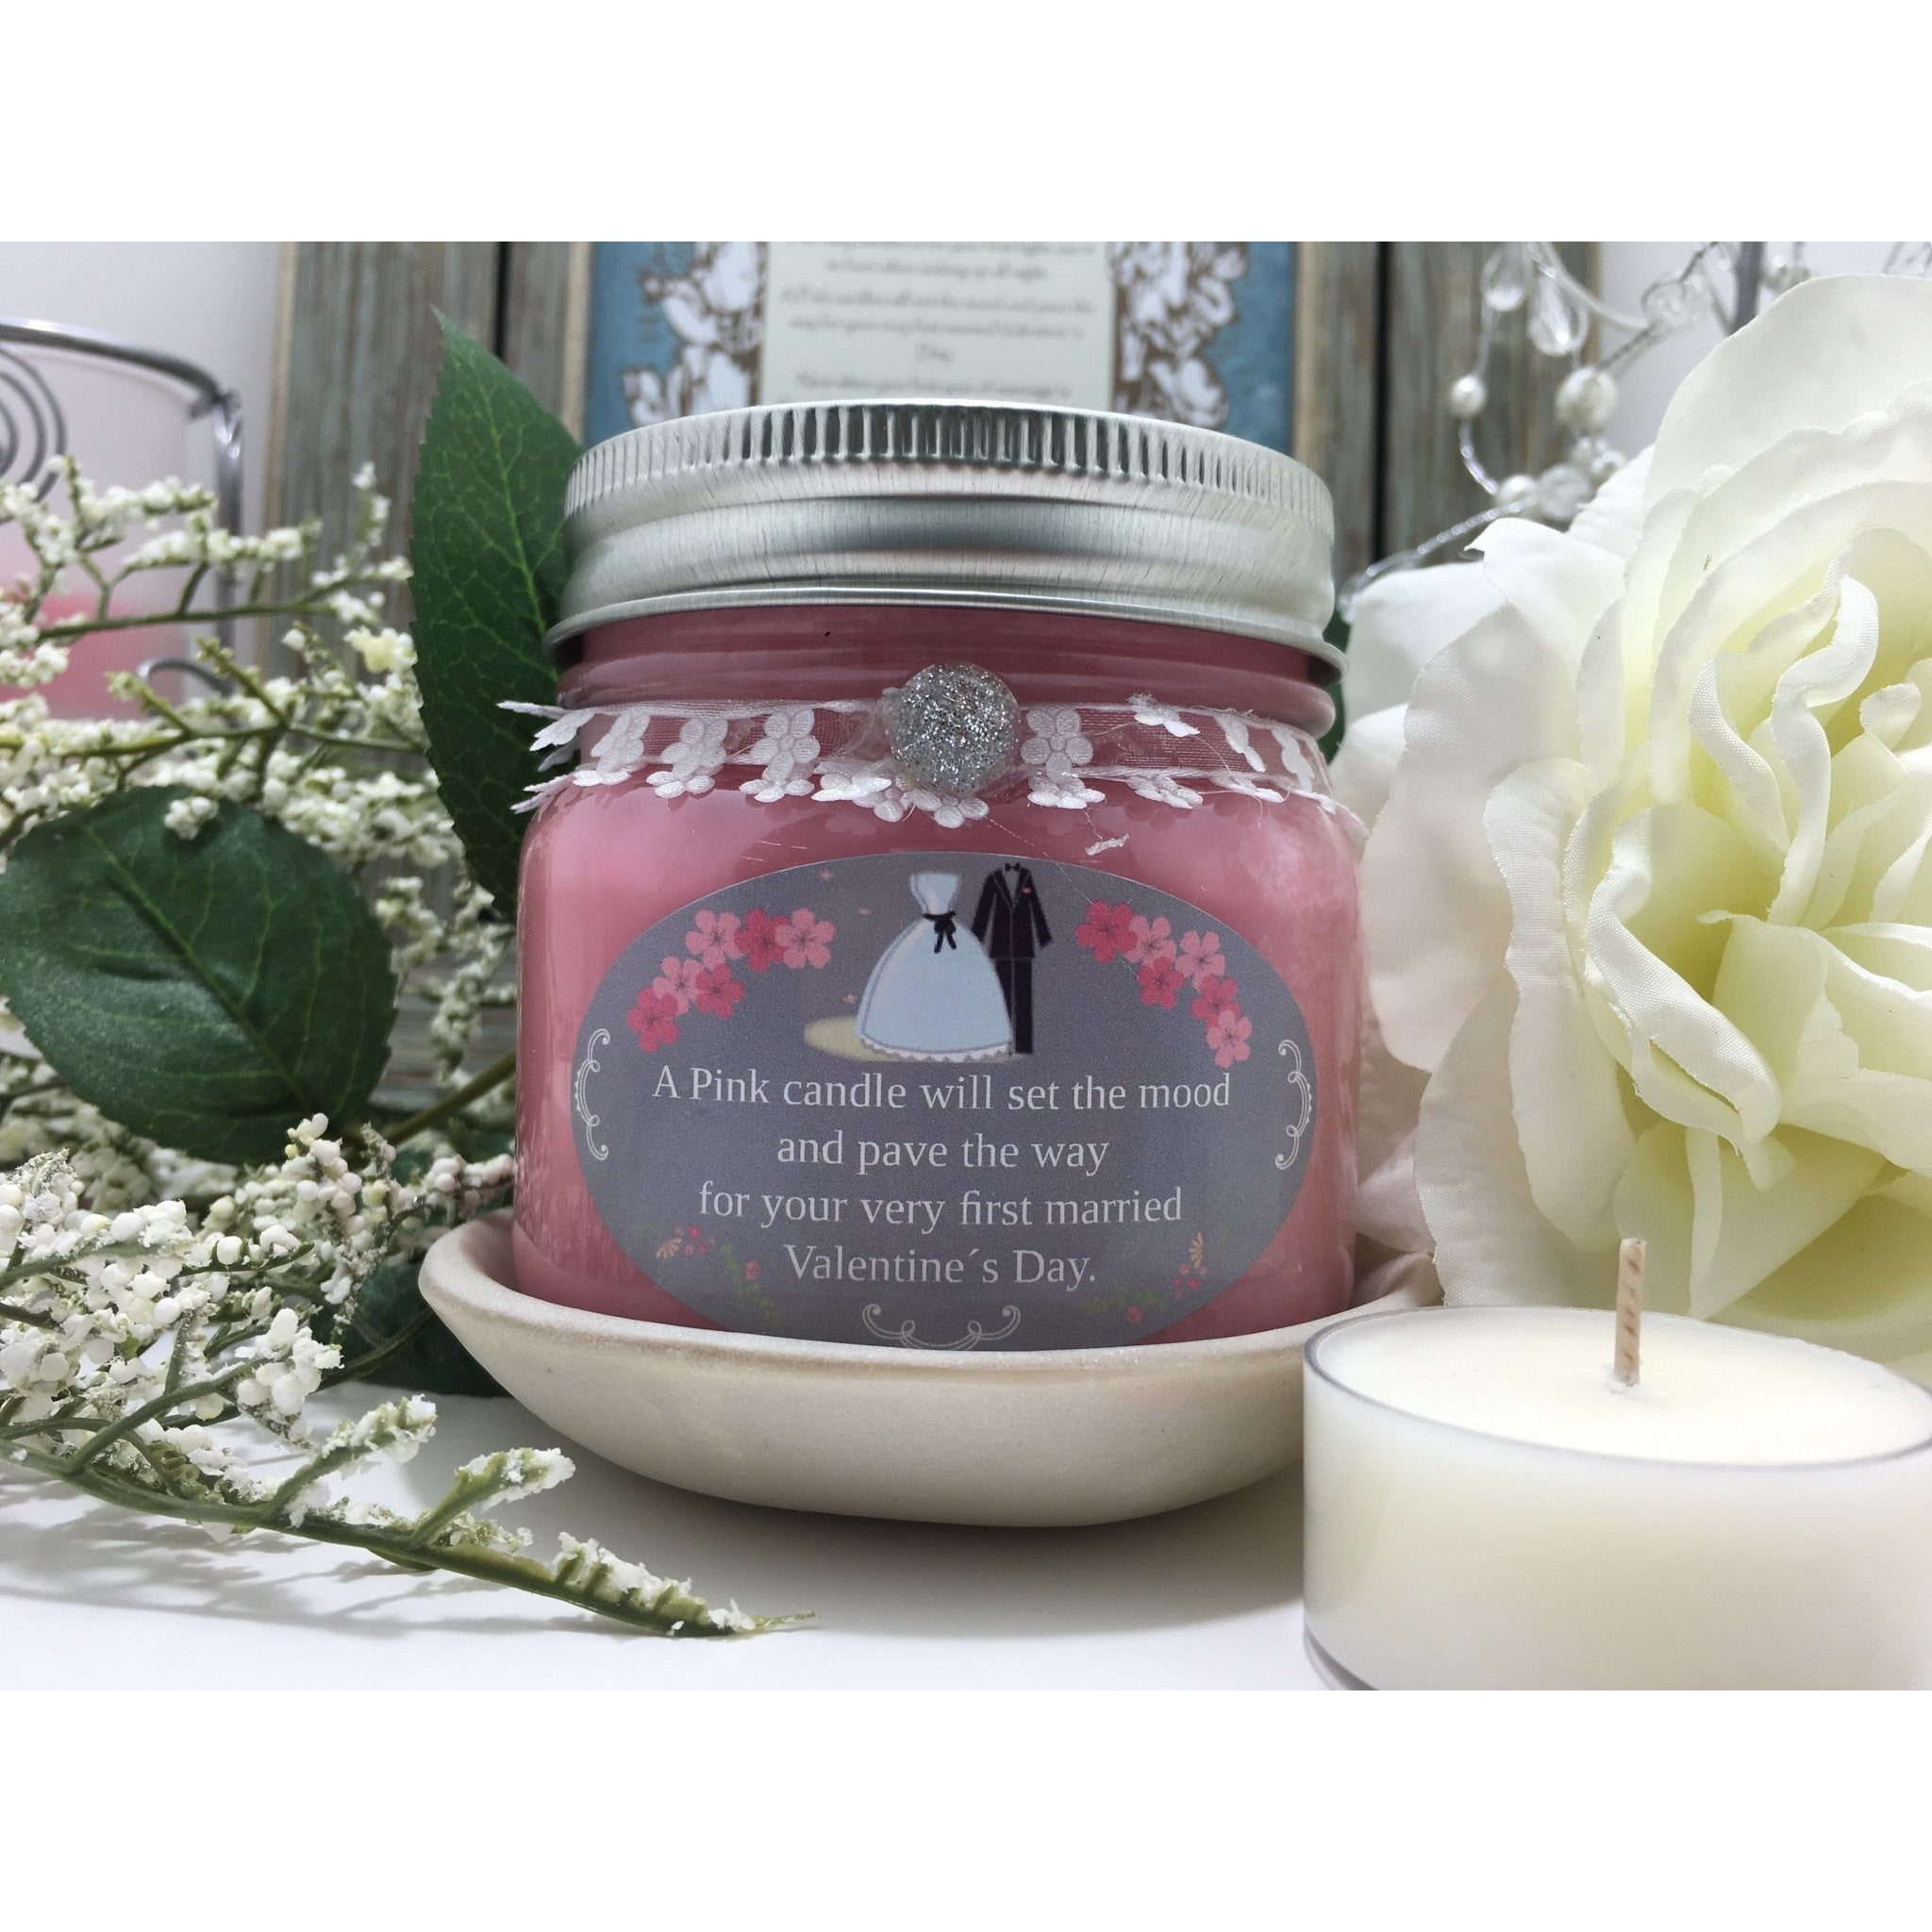 Wedding & Shower Party Natural Hand Poured Soy Candles & Melts -  - Bella-Mia Naturals All Natural Soy Candles & Lip Balms - 19